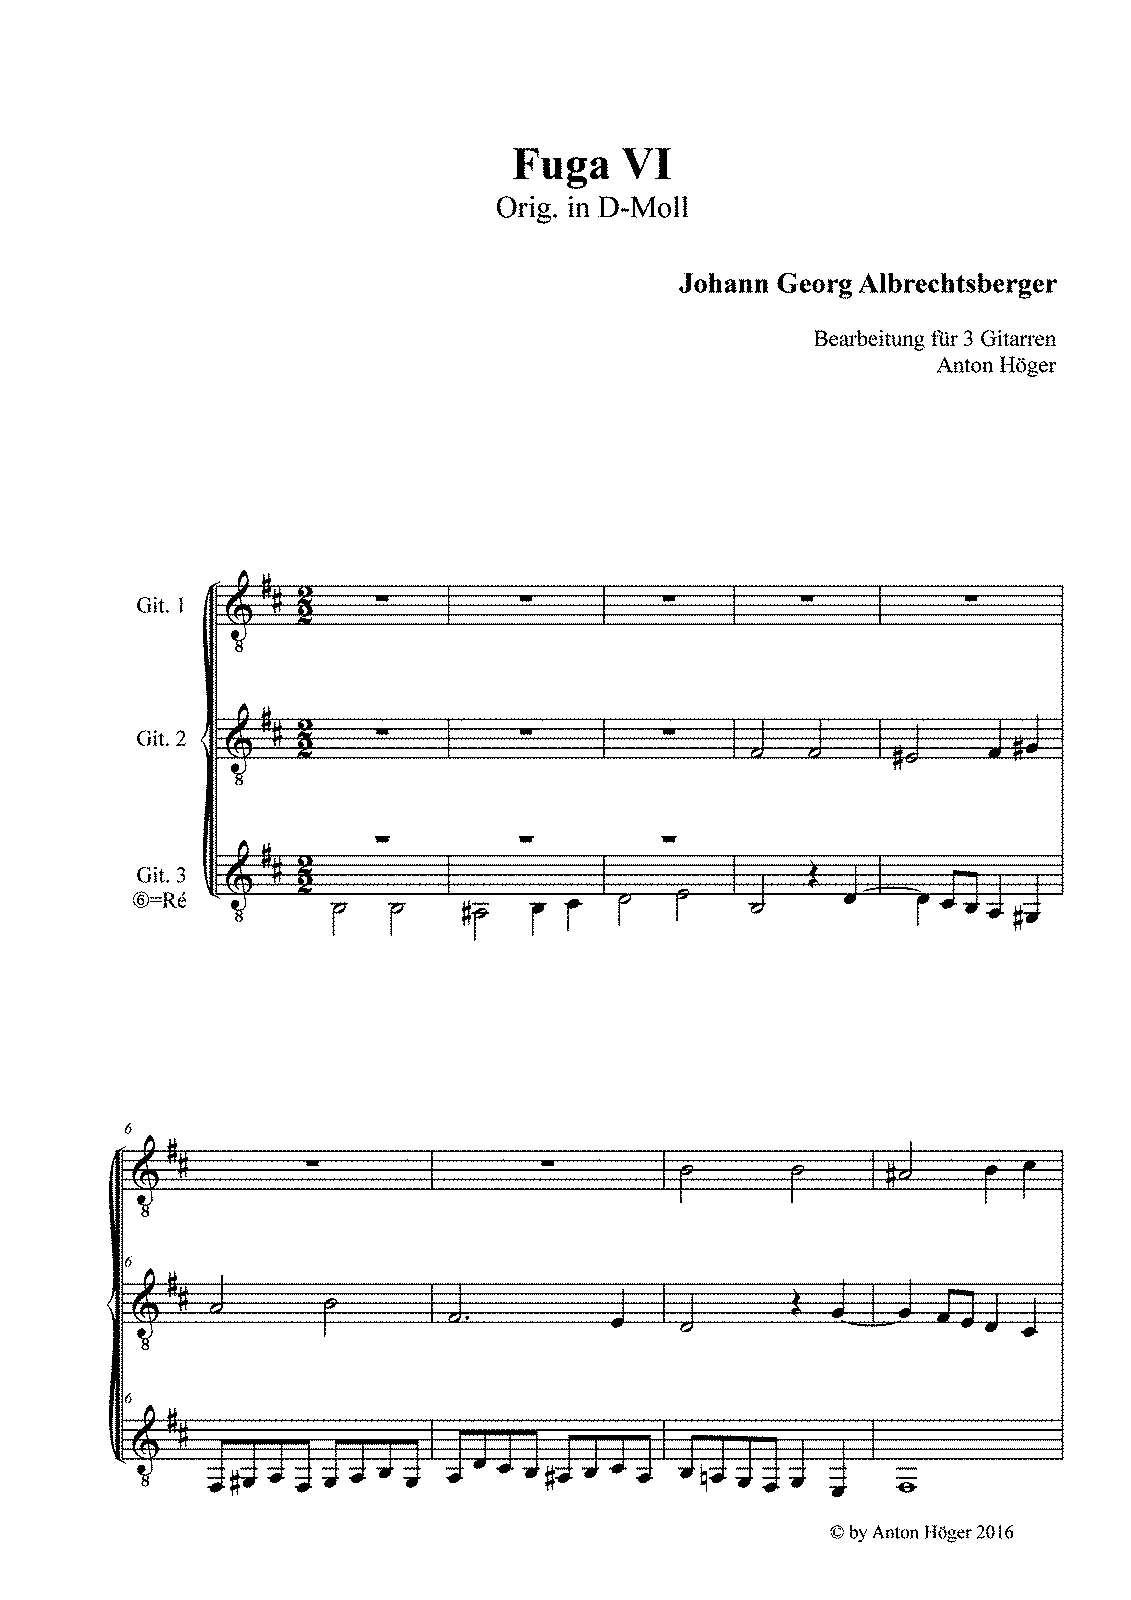 PMLP180830-Albrechtsberger - Op1 VI in d minor.pdf